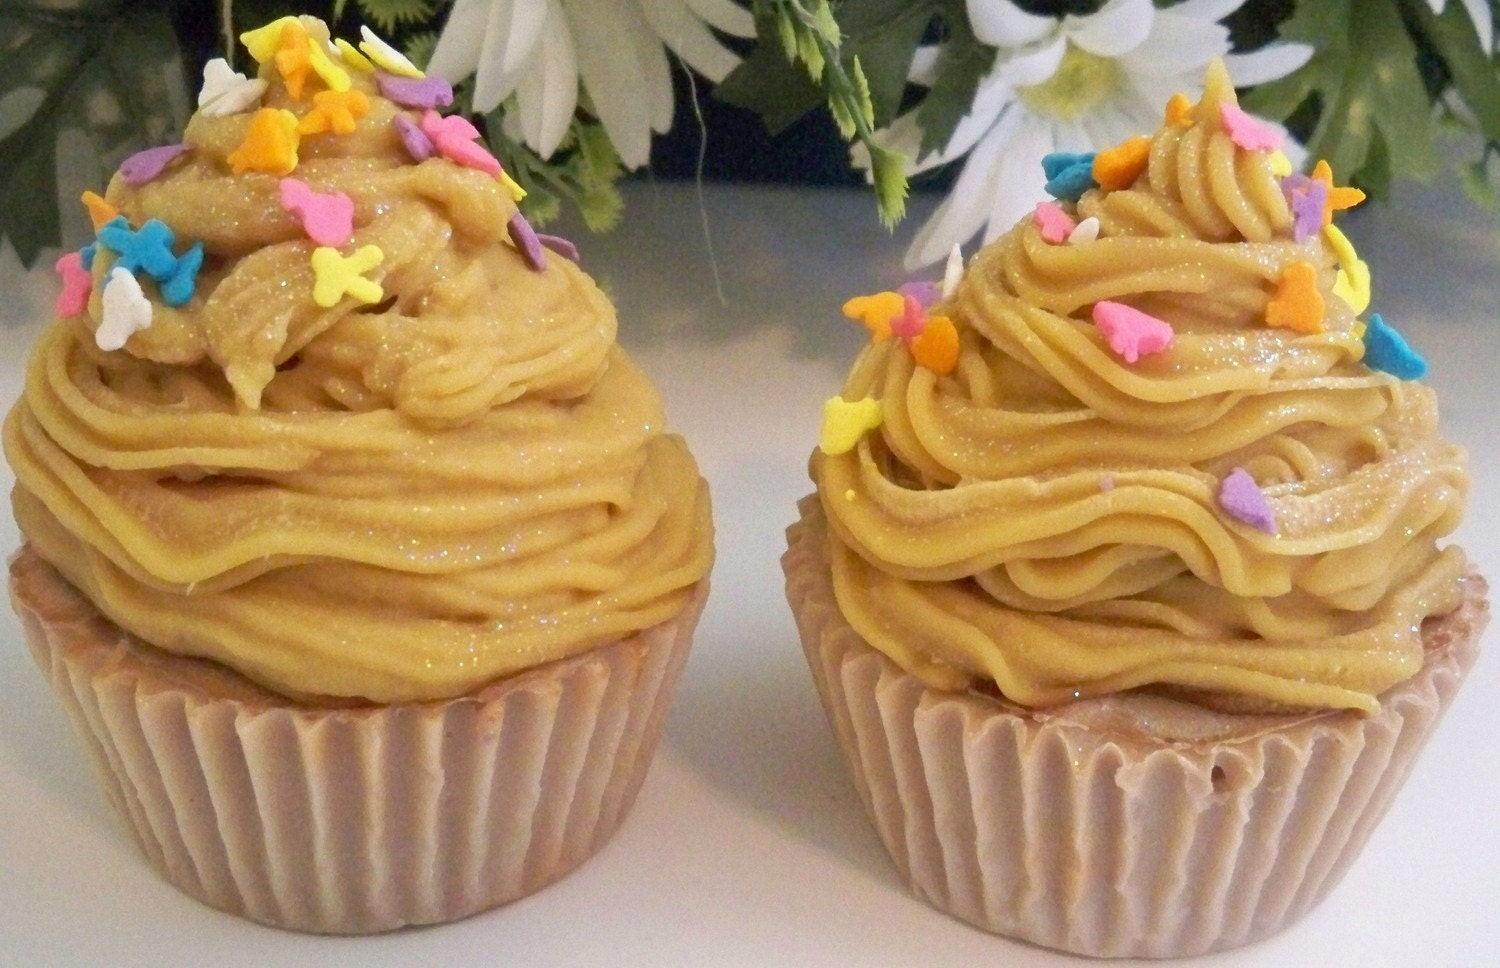 Set Of 2 Vanilla-Banana Cupcake Soaps